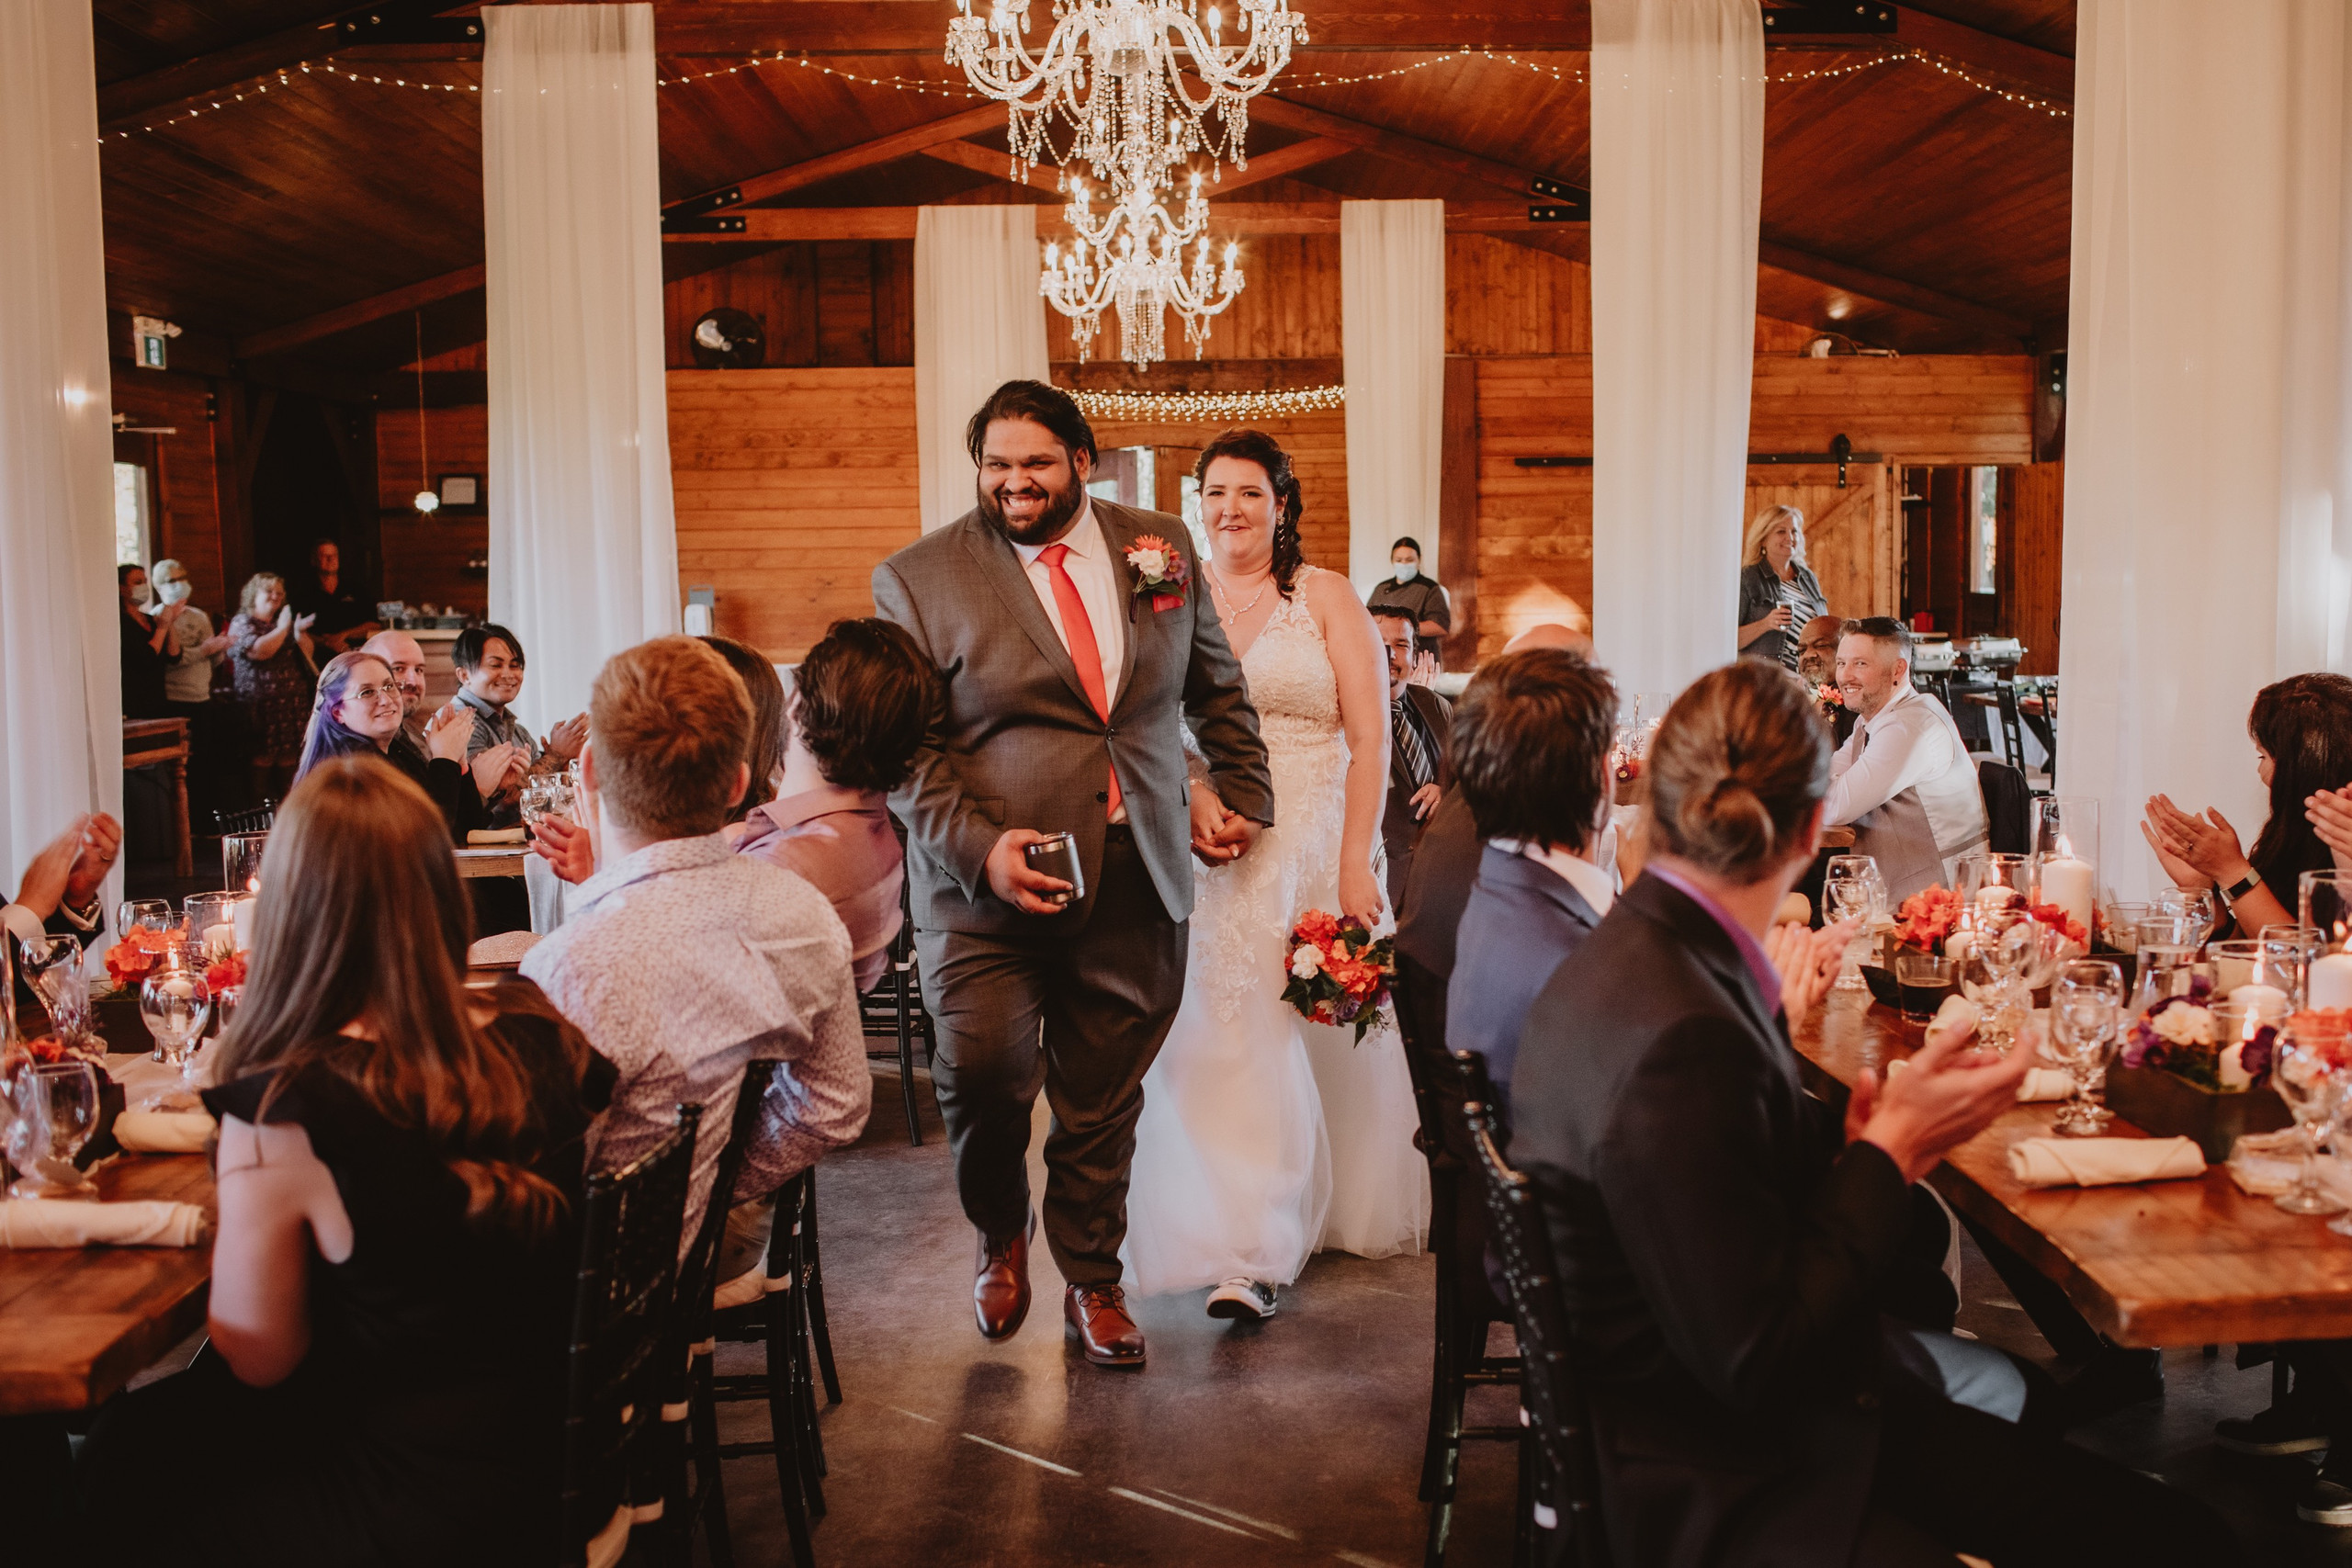 Wedding Couple Joins Reception during fall wedding in Manitoba.